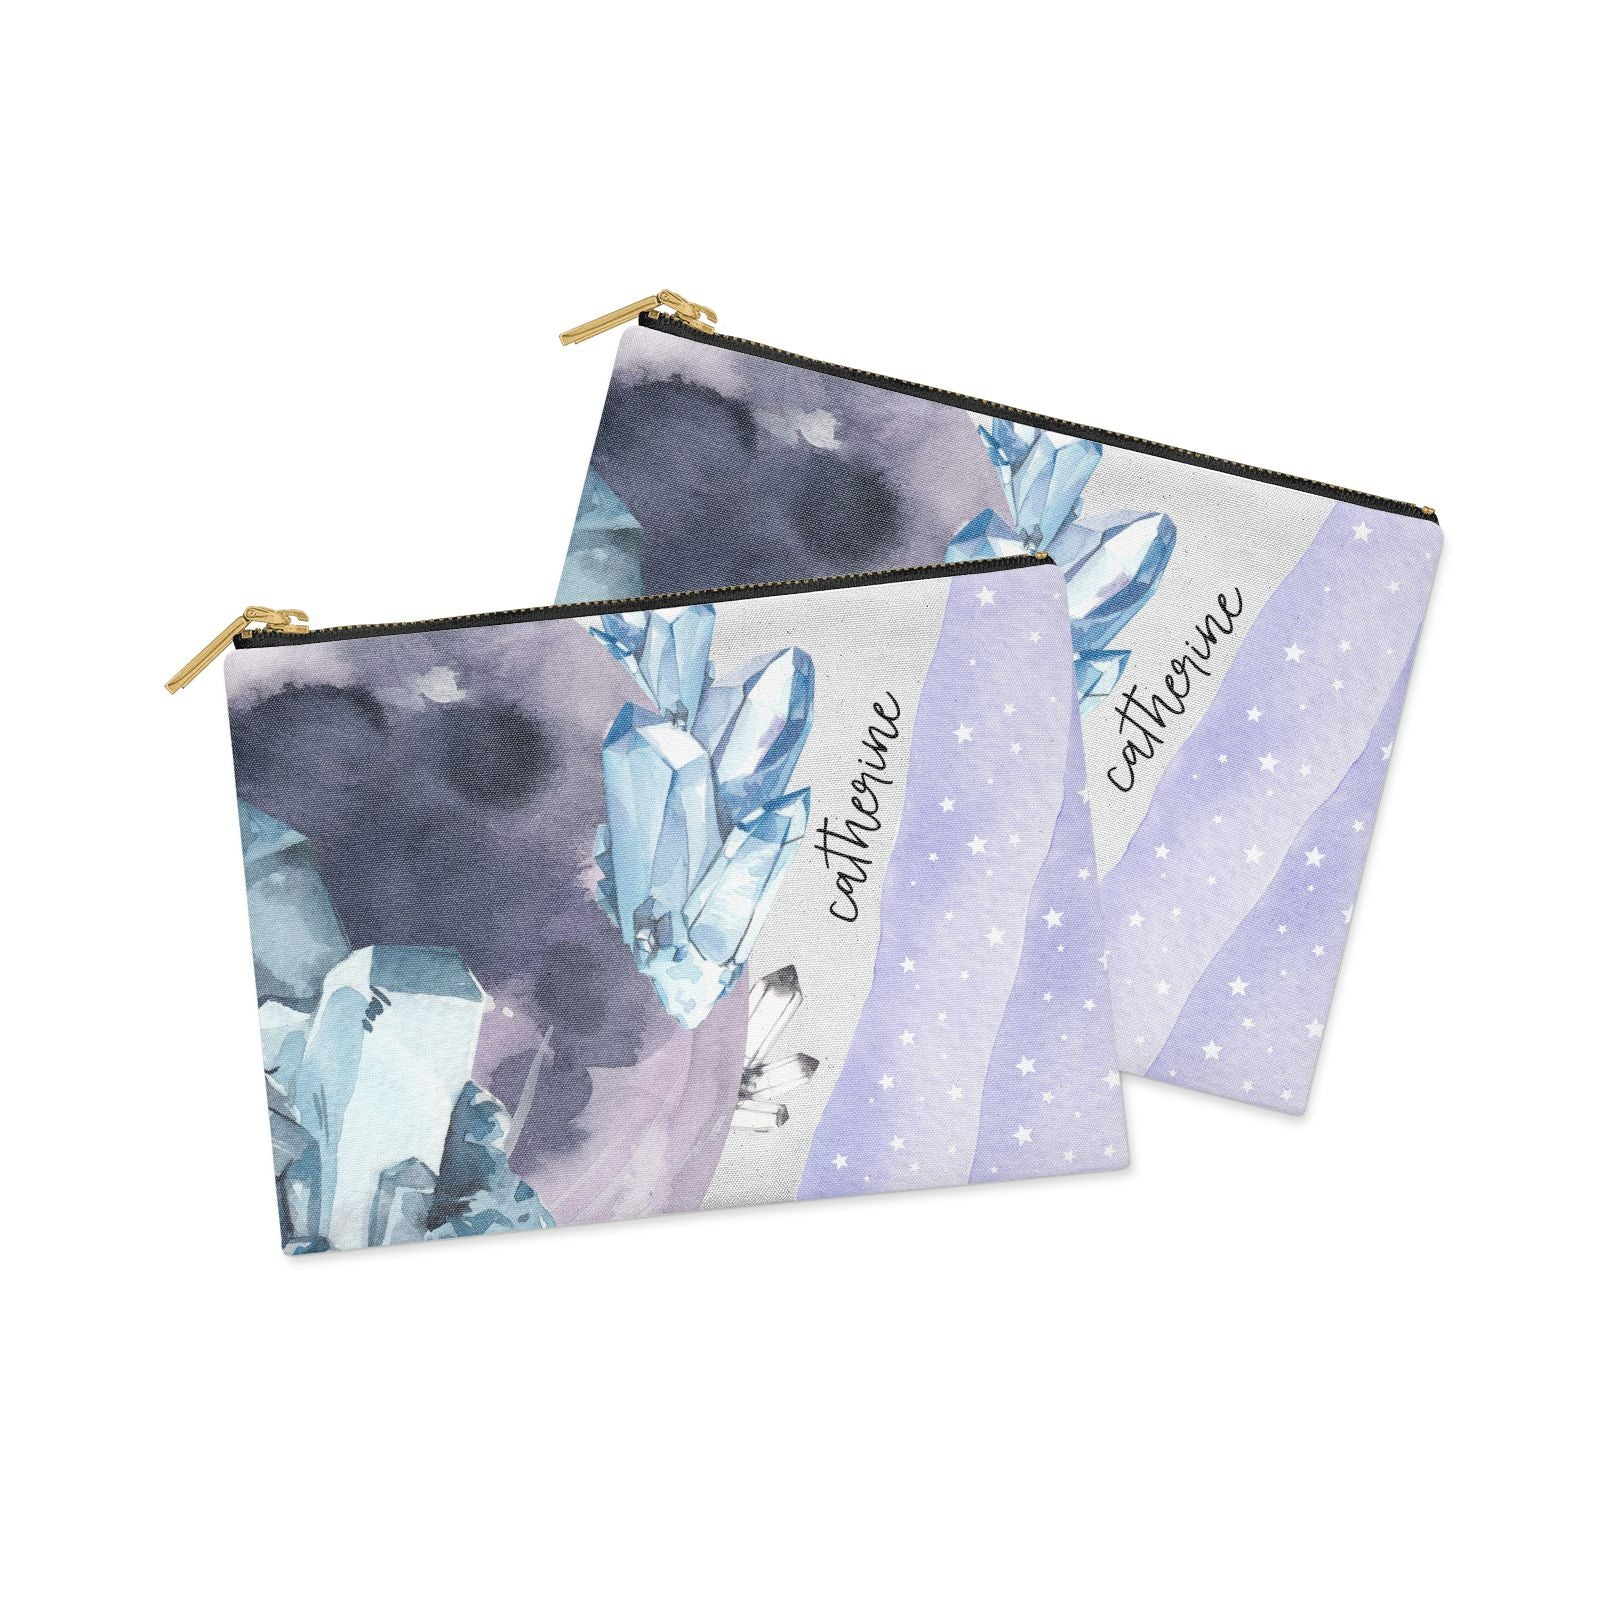 Crystals Personalised Name Clutch Bag Zipper Pouch Alternative View